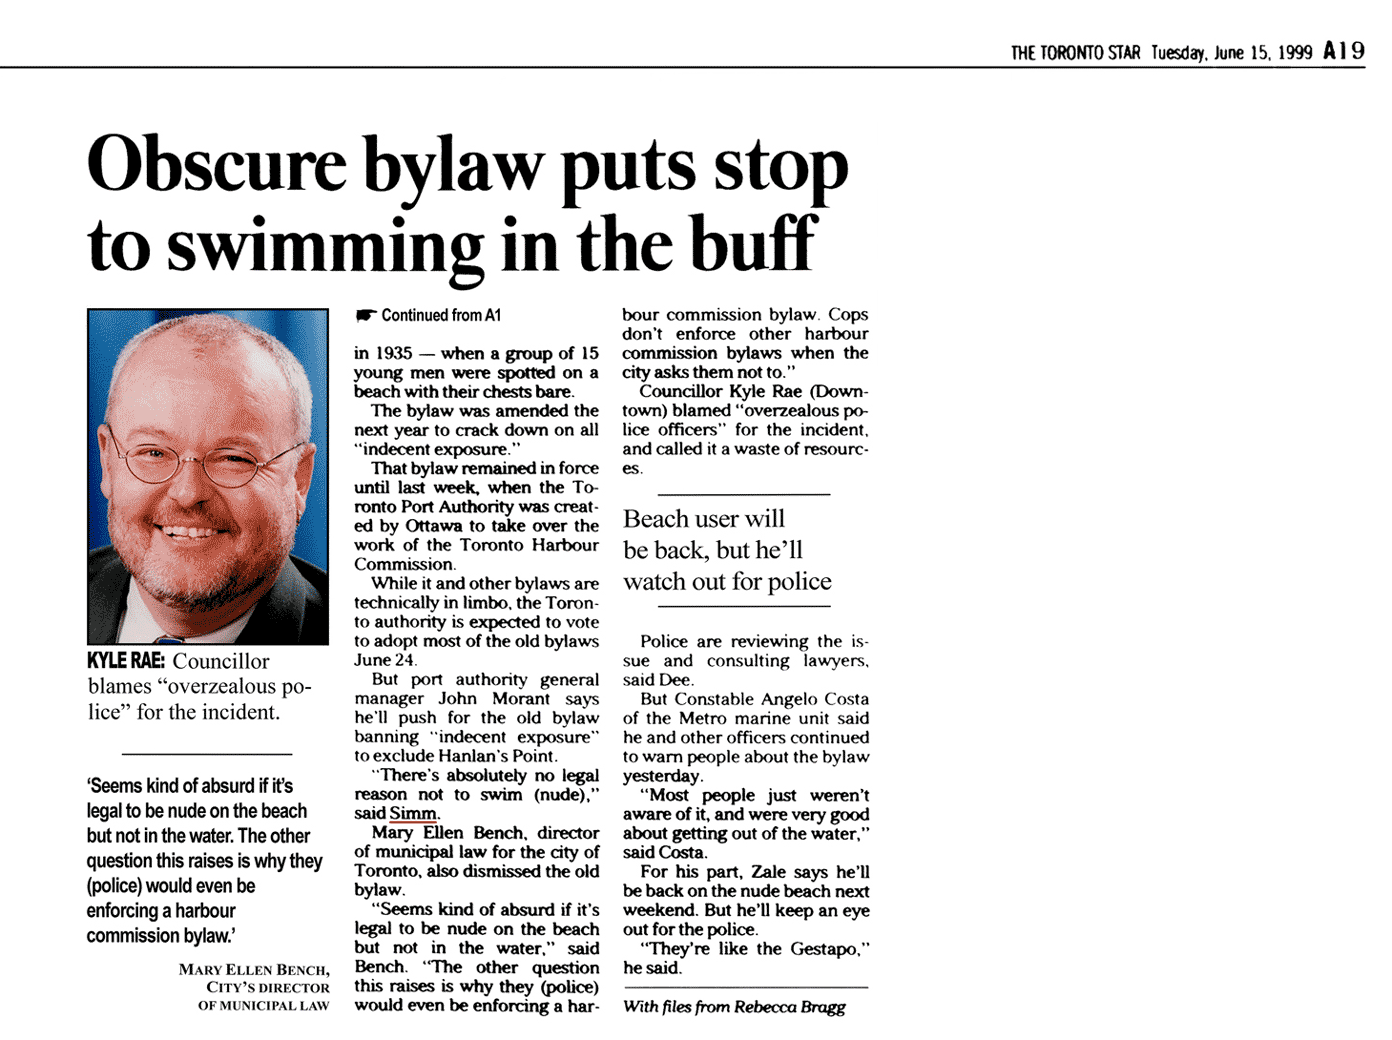 Toronto Star 1999-06-15  p.A19 (continued from A1) Police harass swimmers (who need